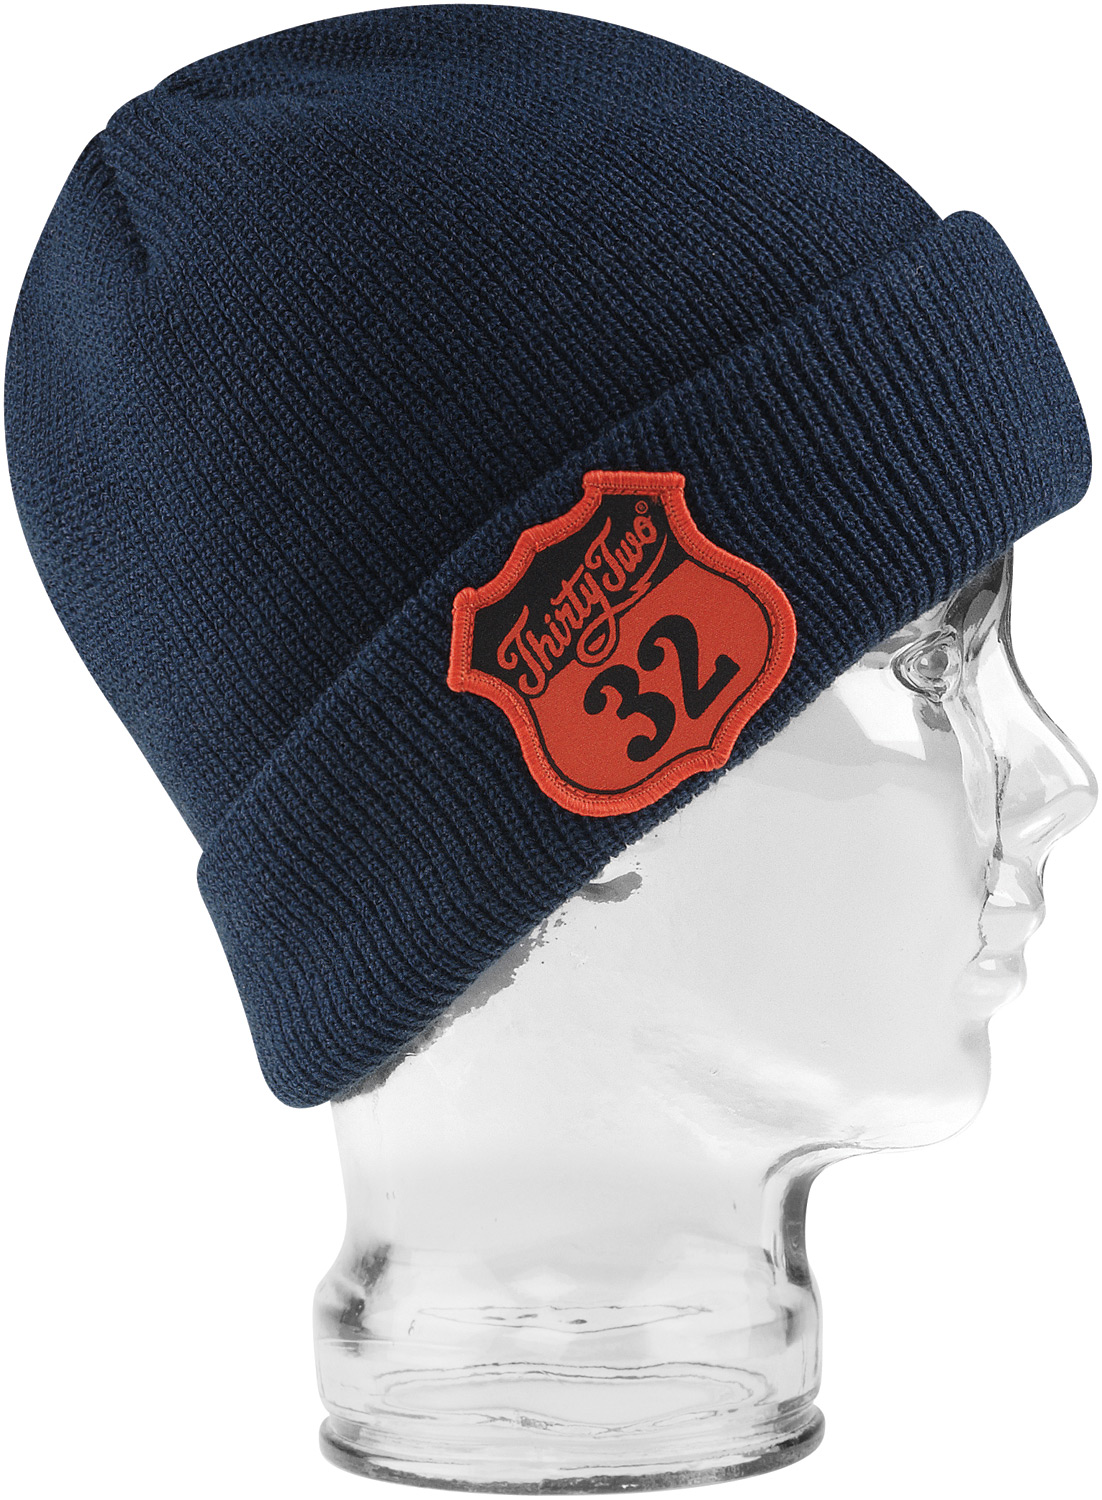 Guns and Military Key Features of the 32 - Thirty Two Self Serve Beanie: 100% acrylic Joe Sexton signature cuff beanie with embroidered patch - $17.95